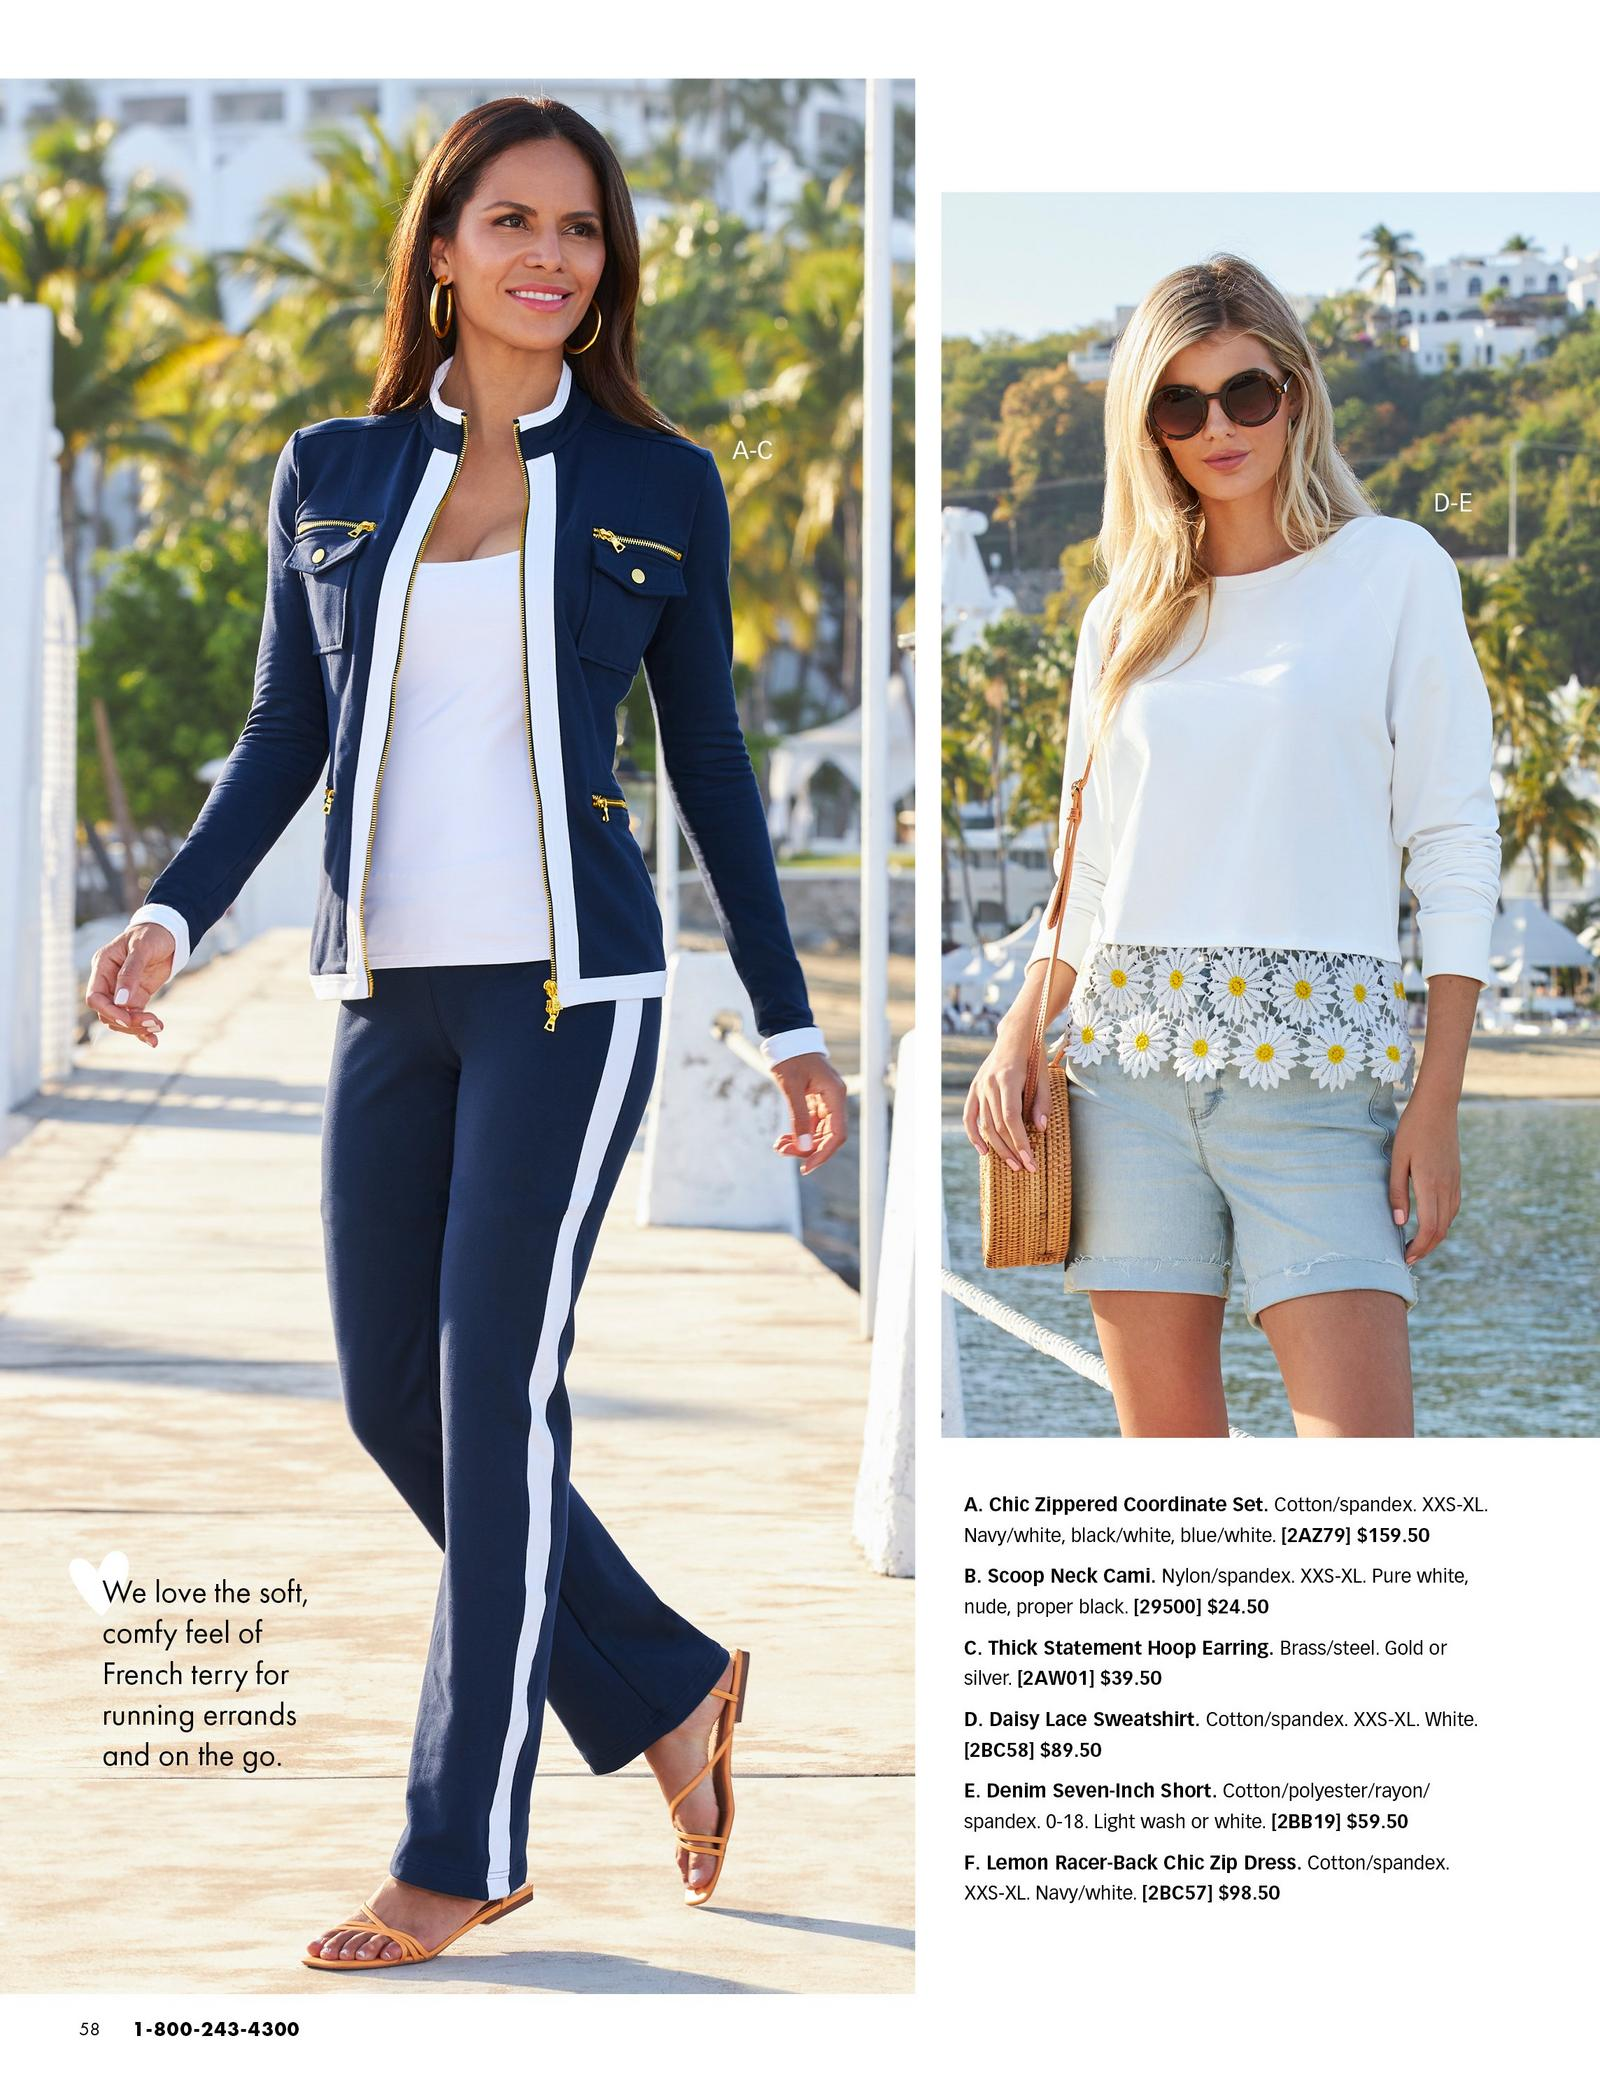 left model wearing a navy and white chic zip set and white tank top, orange sandals, and gold hoop earrings. right model wearing a white sweatshirt with daisy and lace embellishments, jean shorts, straw bag, and sunglasses.